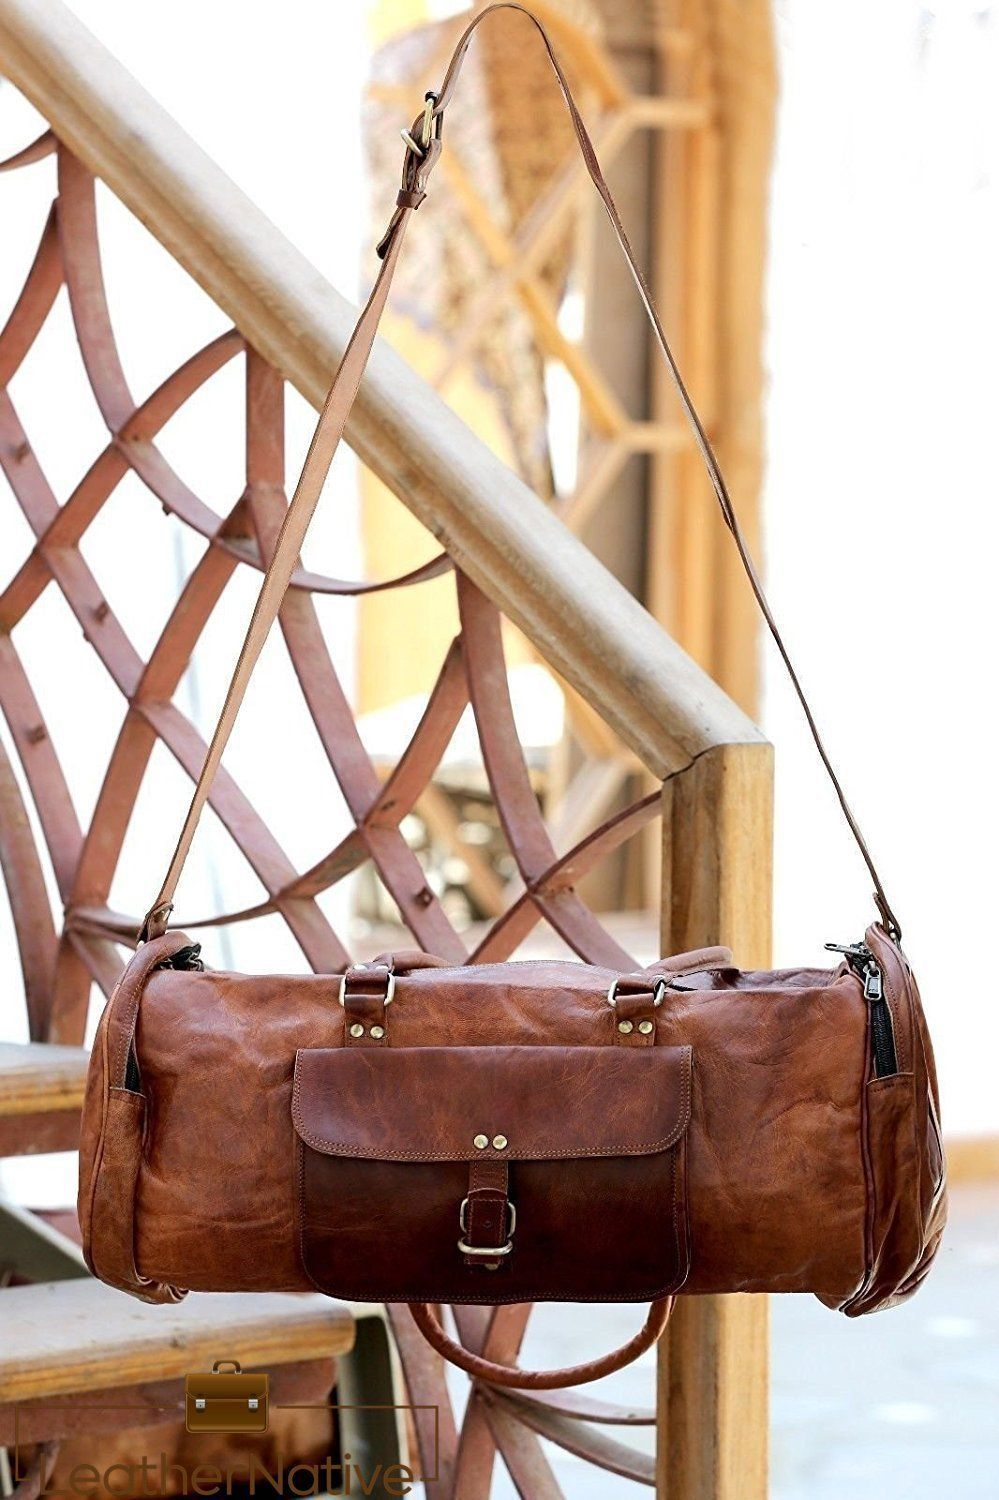 c7844fdc47cf Large Handmade Vintage Men s Genuine Leather Travel Duffel Weekend Bag  and or Gym bag made from genuine